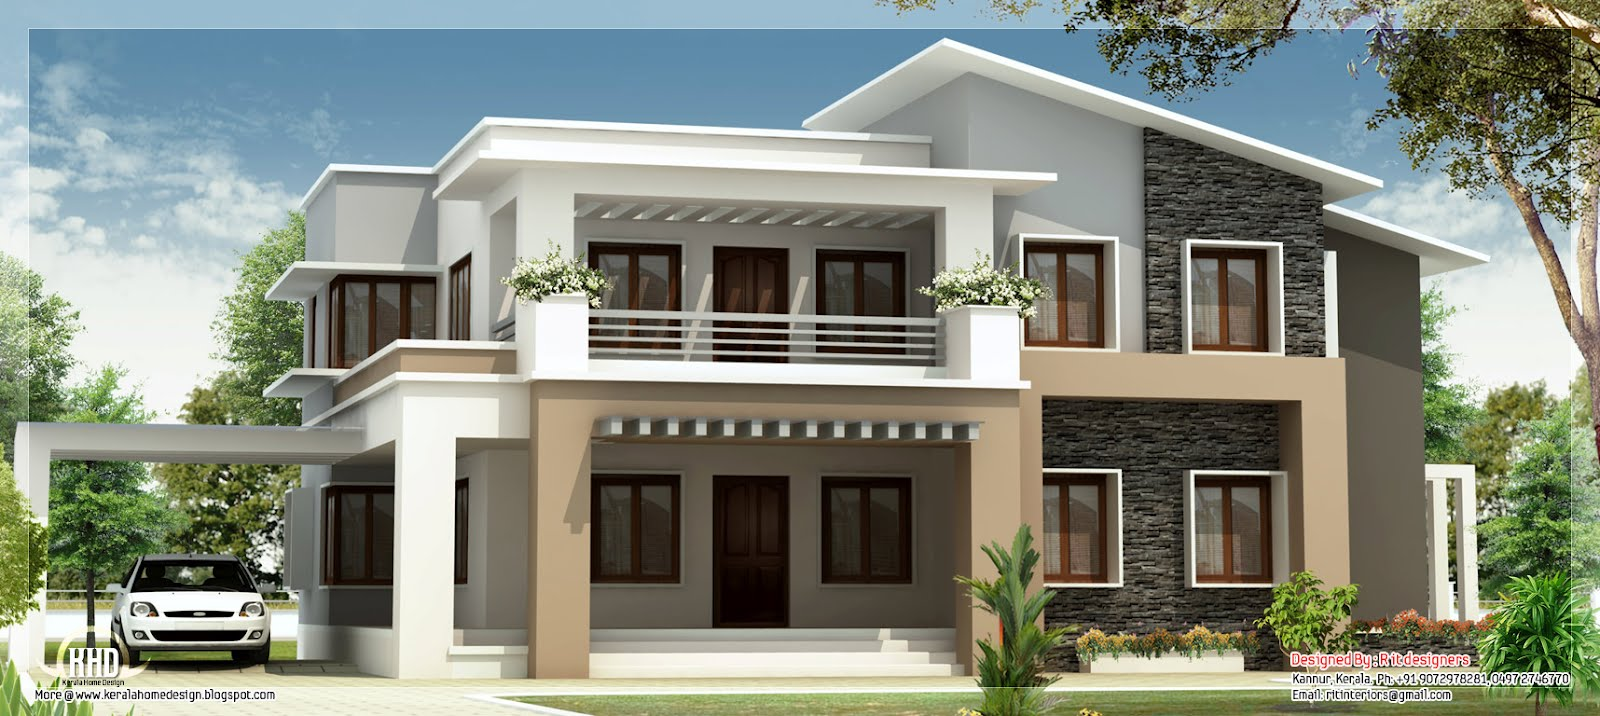 Amazing 3D Front Elevation.com: Lahore 2 KanaL House Design Lahore, Dimentia |  Arabian Villas | Pinterest | Front Elevation And House